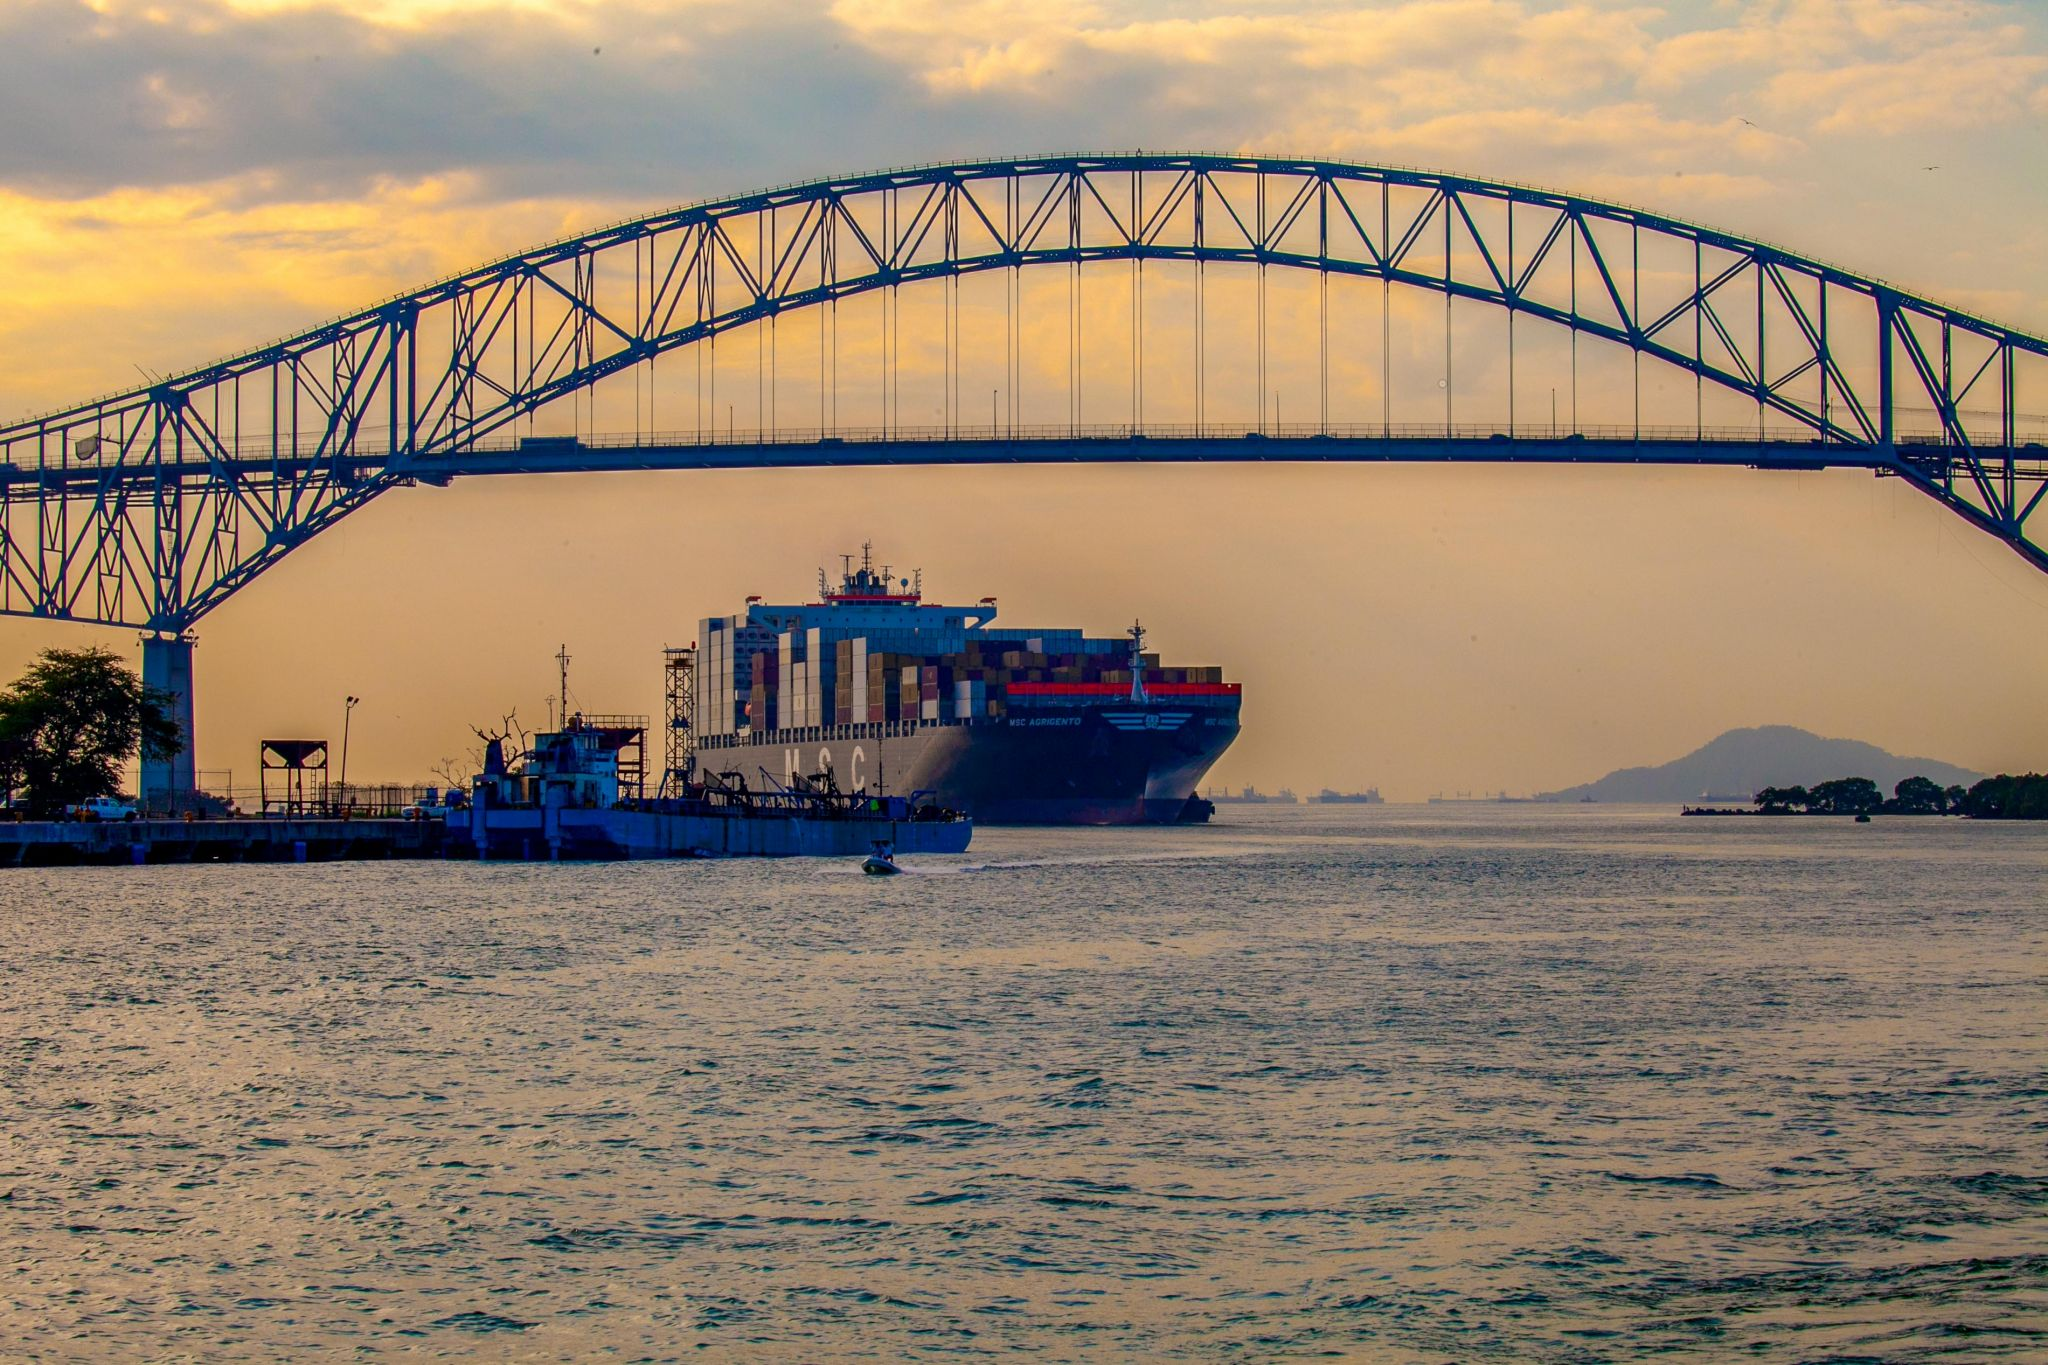 Ship about to enter Panama Canal, Panama